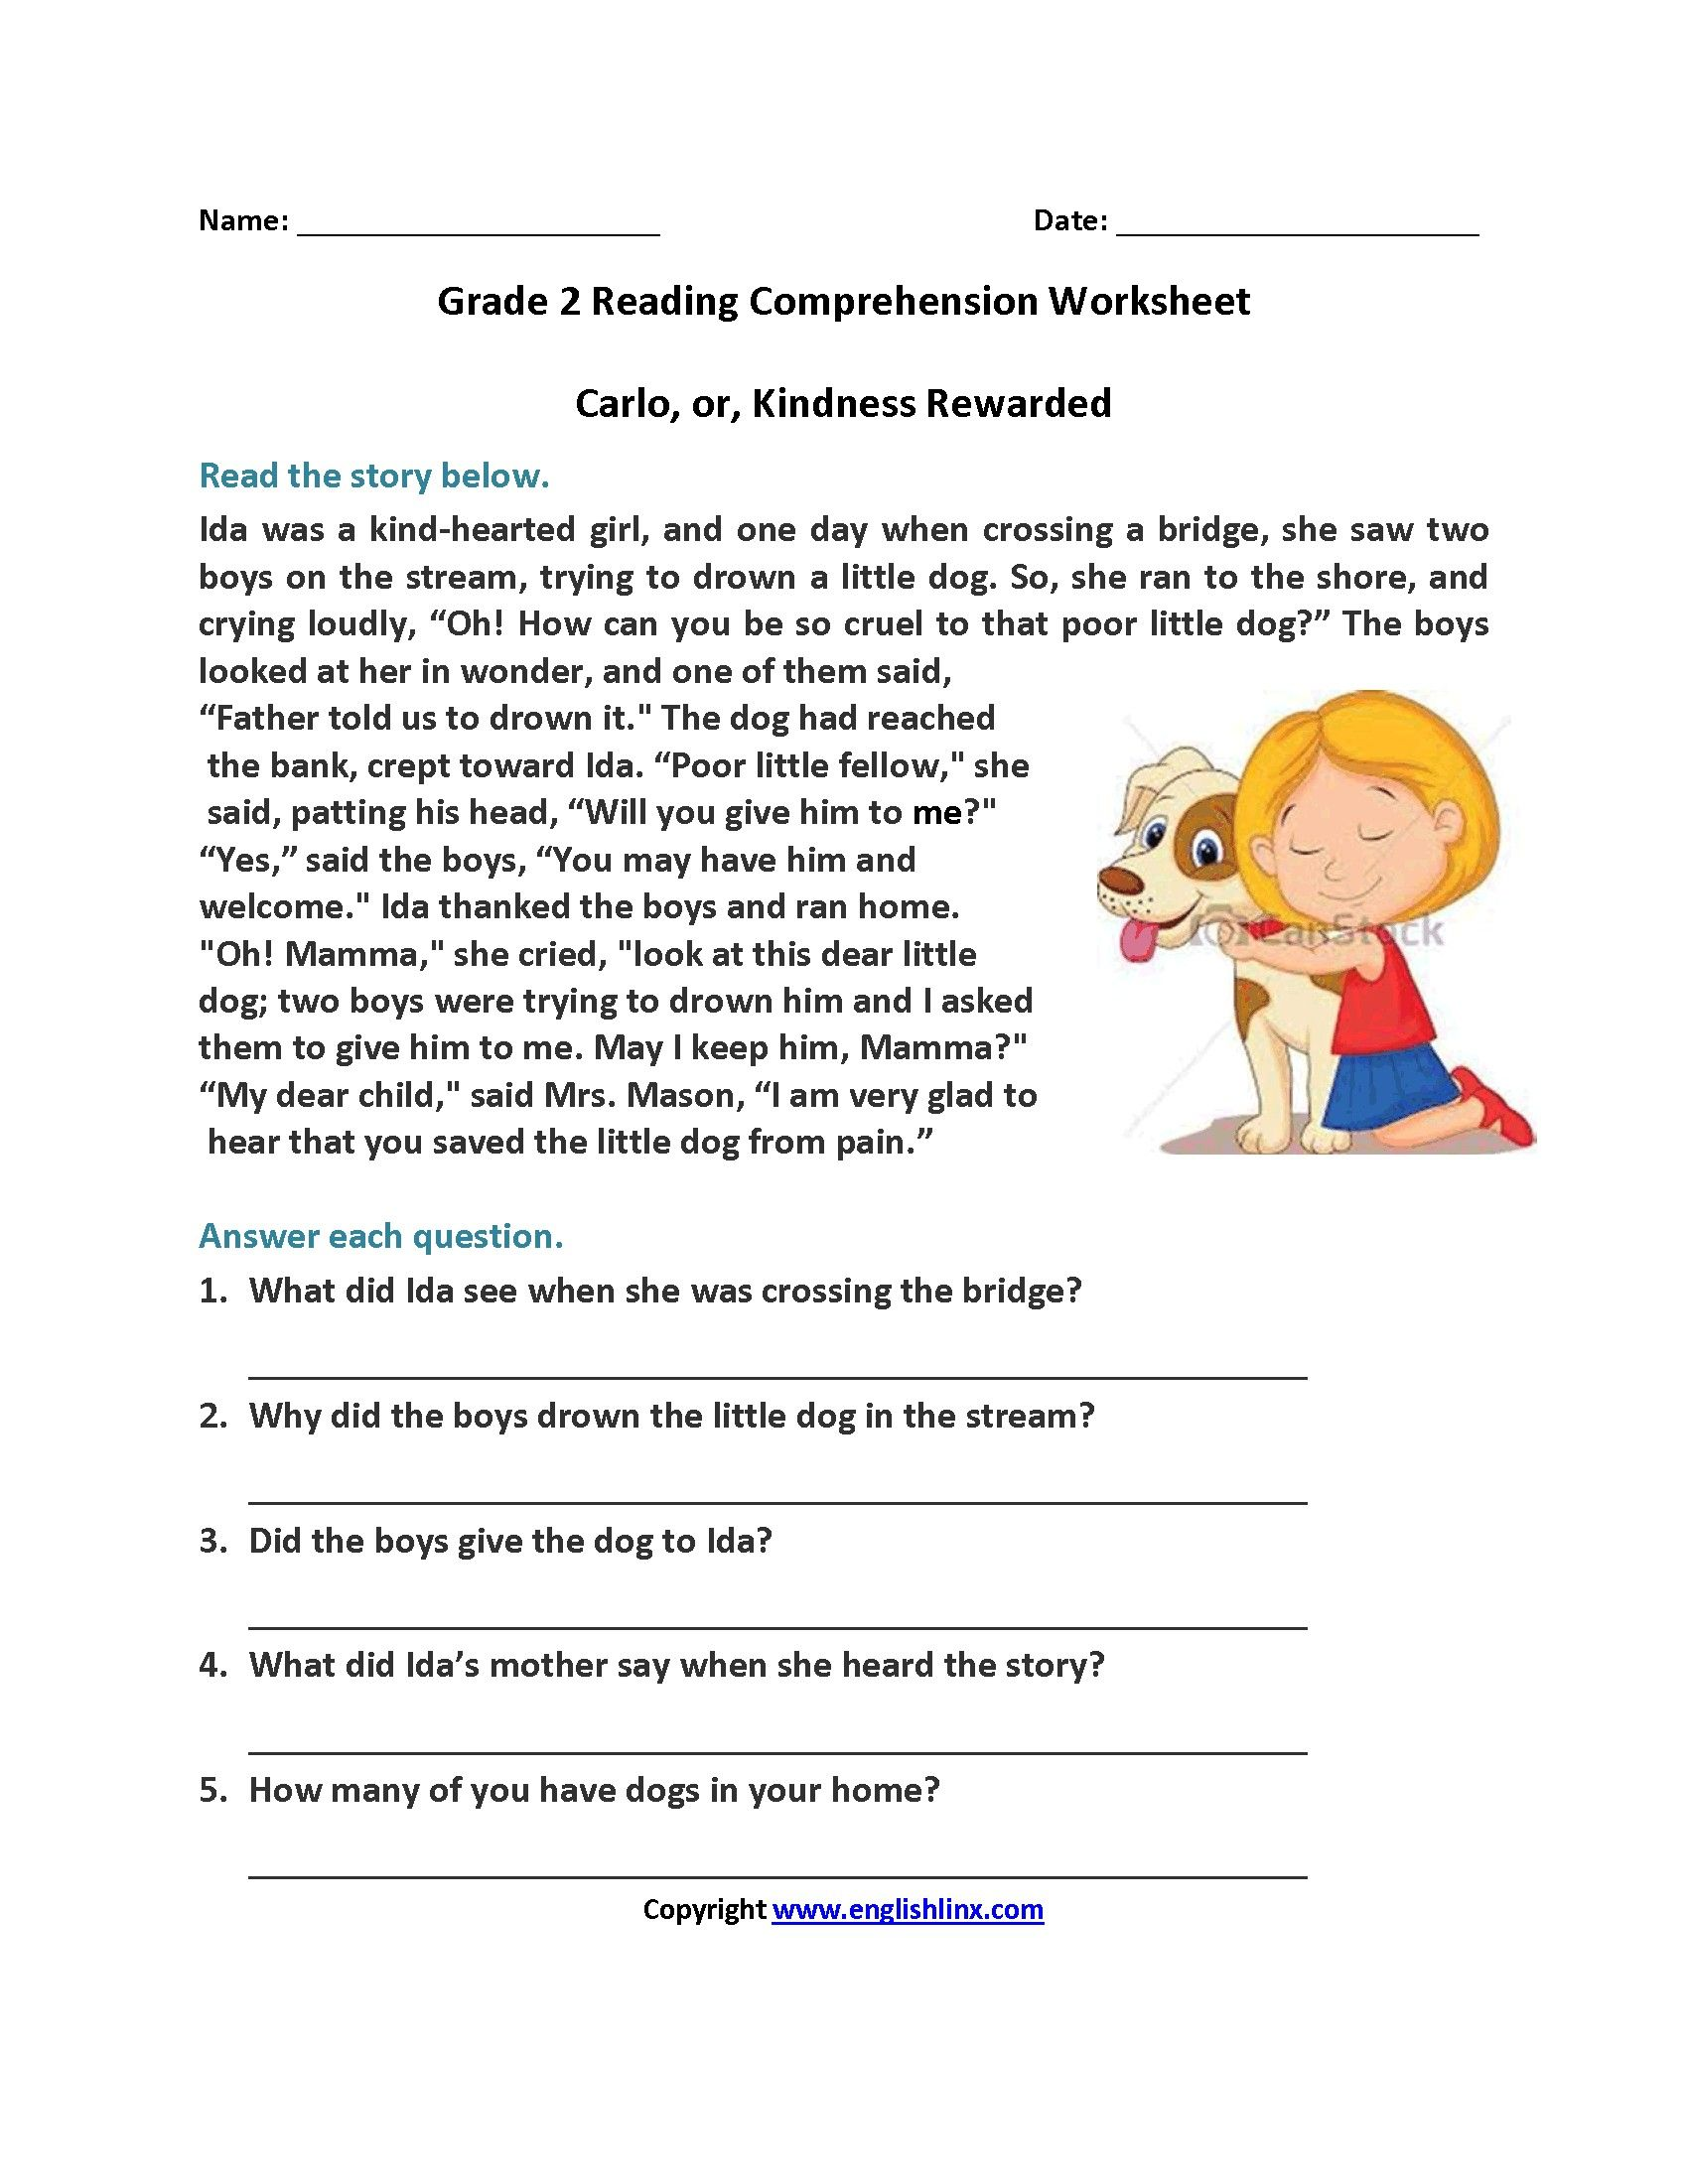 14 Accomplished Reading Worksheets for Preschool   Membaca [ 2200 x 1700 Pixel ]